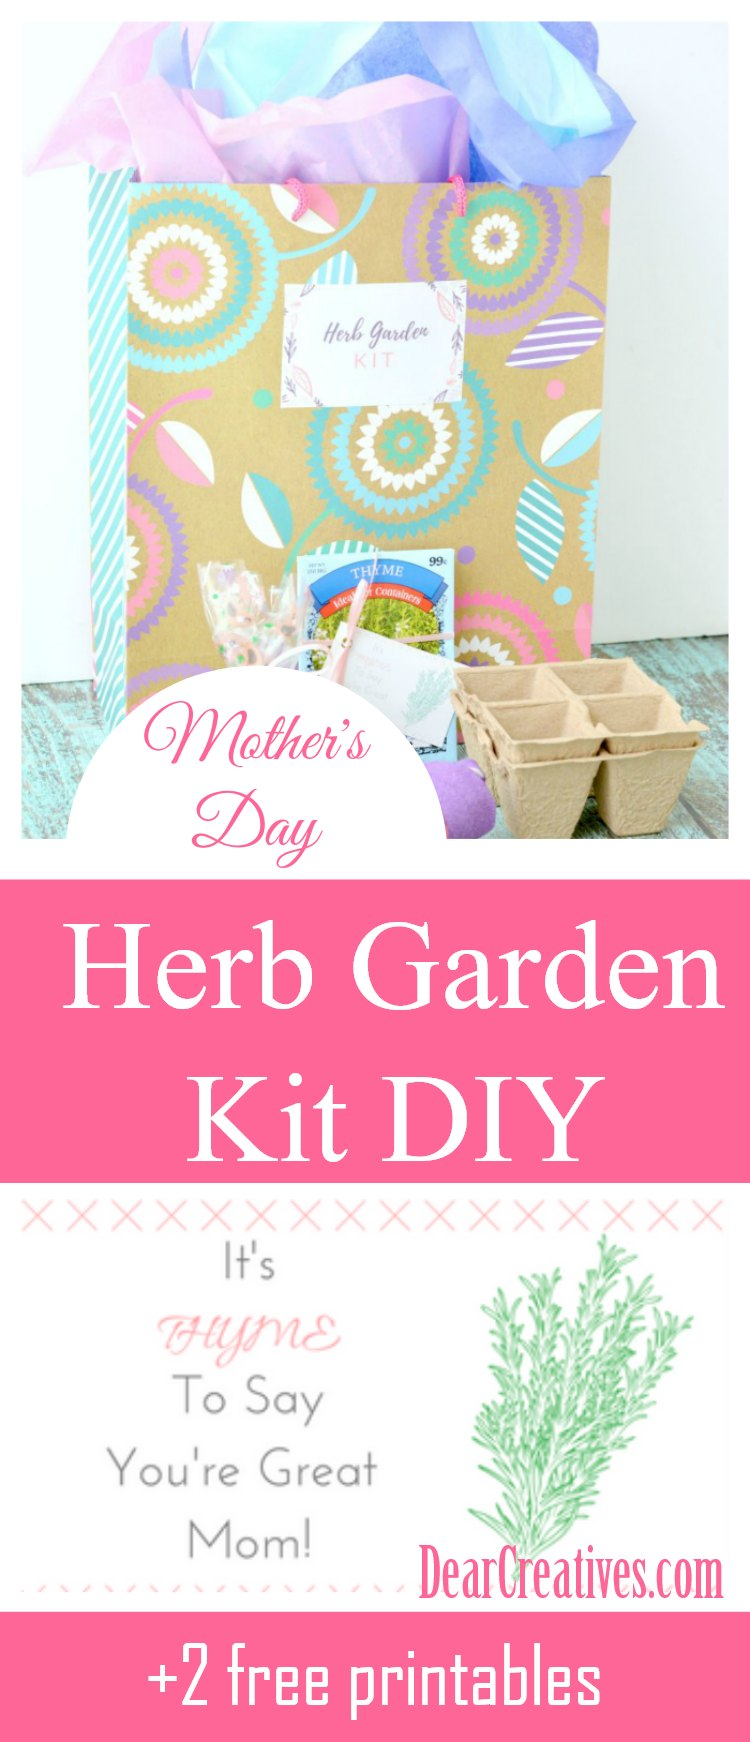 Herb Garden Kit DIY With Free Printable Tags